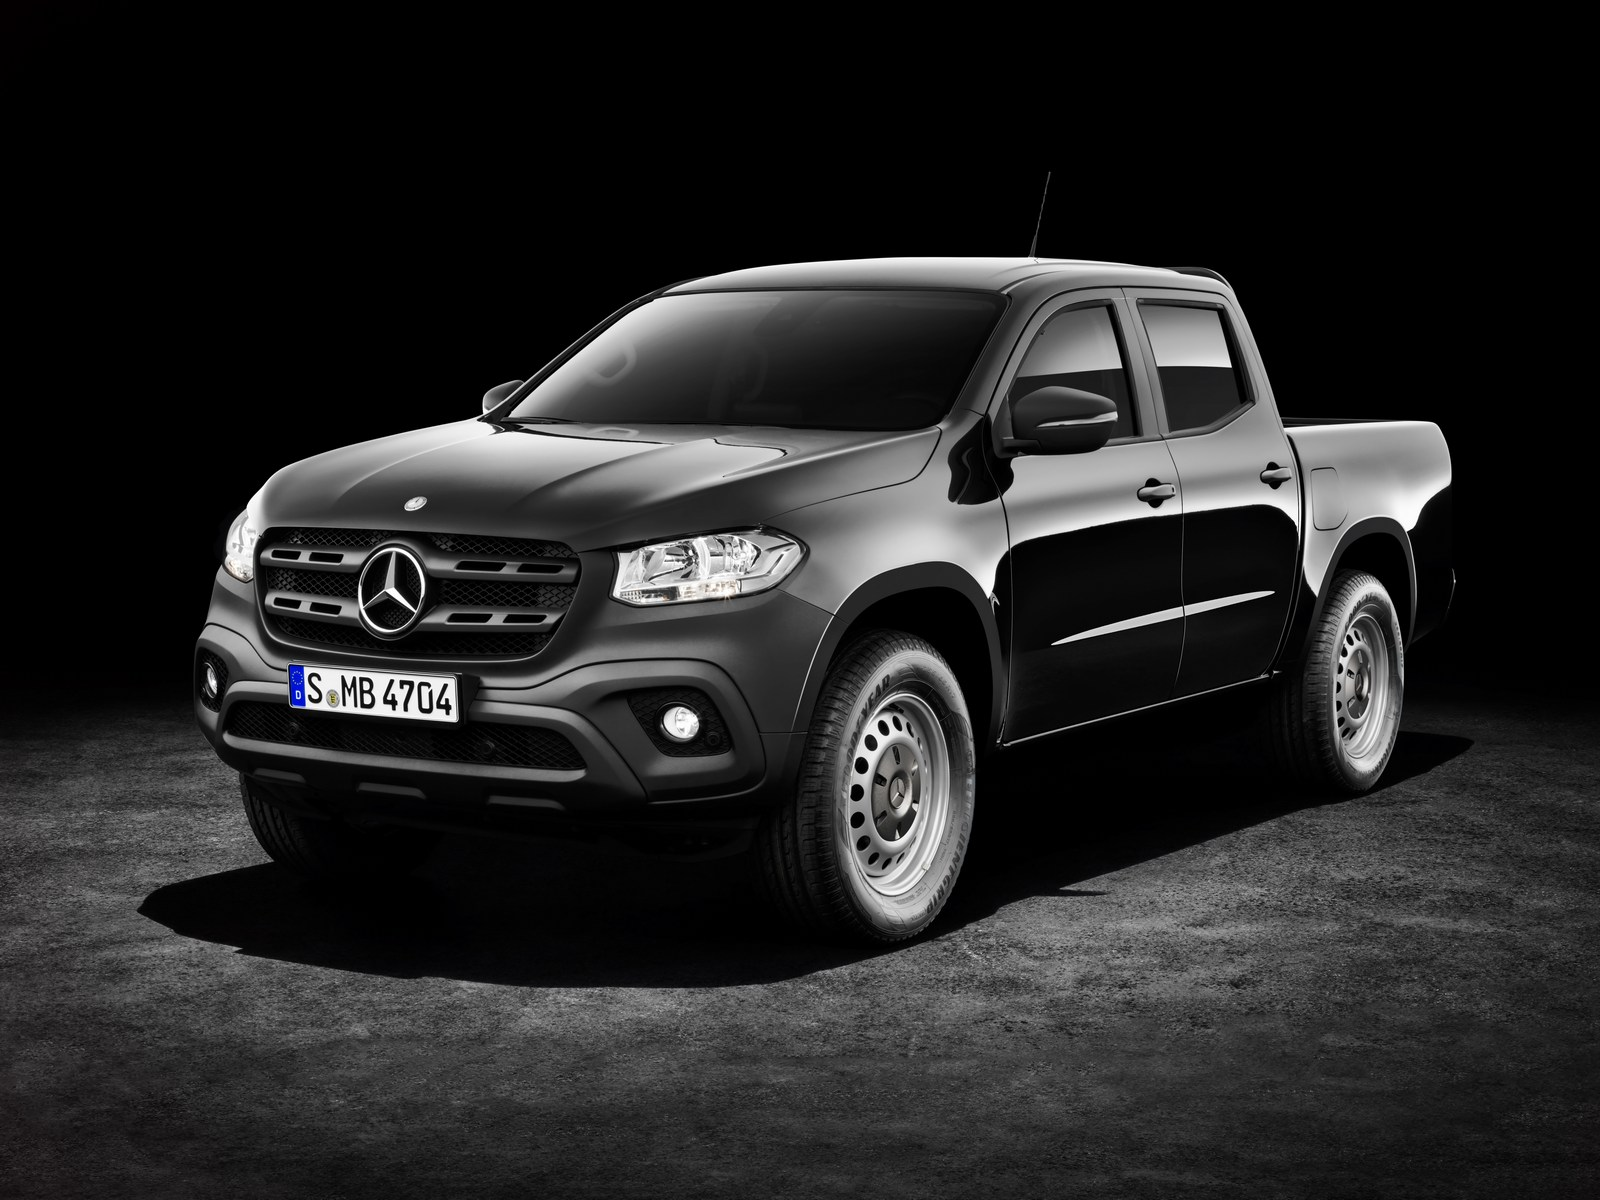 Mb X? S? Mercedes Amg X Class Not Happening Chassis Cab Confirmed